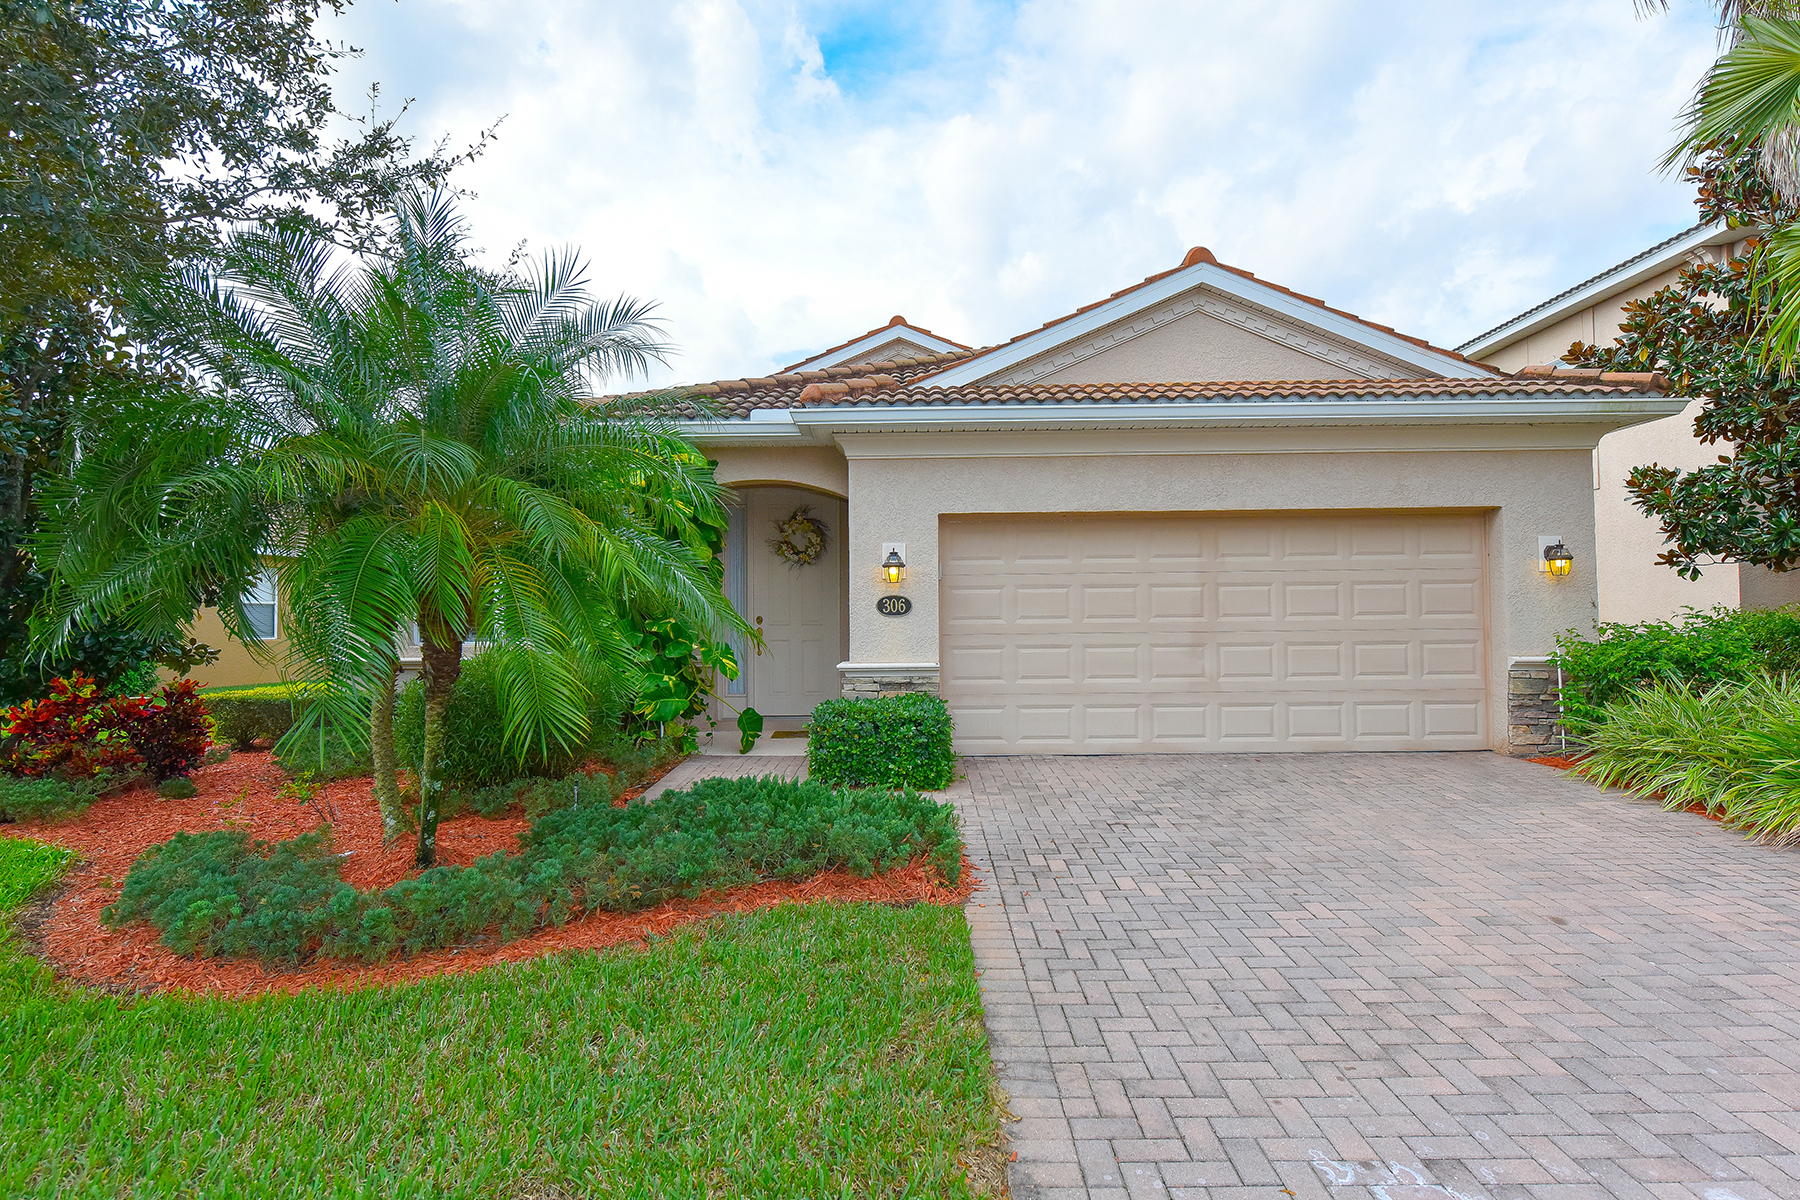 Single Family Home for Sale at RIVER STRAND 306 River Enclave Ct Bradenton, Florida, 34212 United States